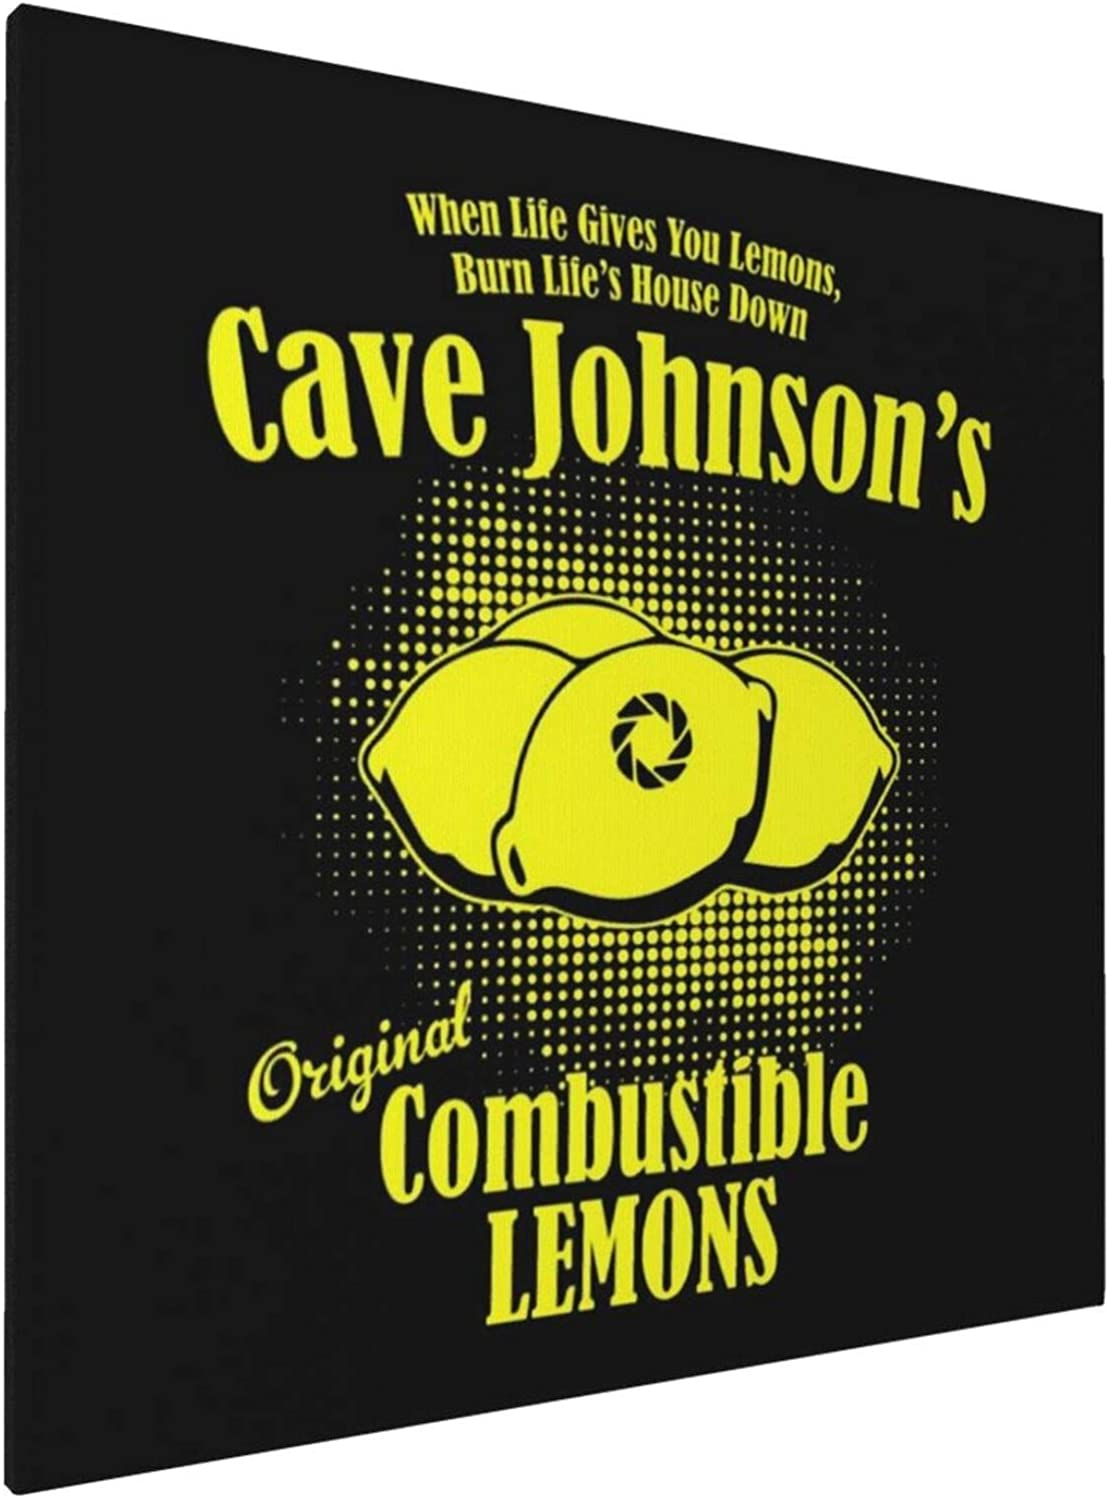 1007 Canvas Prints Wall Art Paintings(20x20in) Portal 2 Cave Johnsons Combustible Lemons Pictures Home Office Decor Framed Posters & Prints